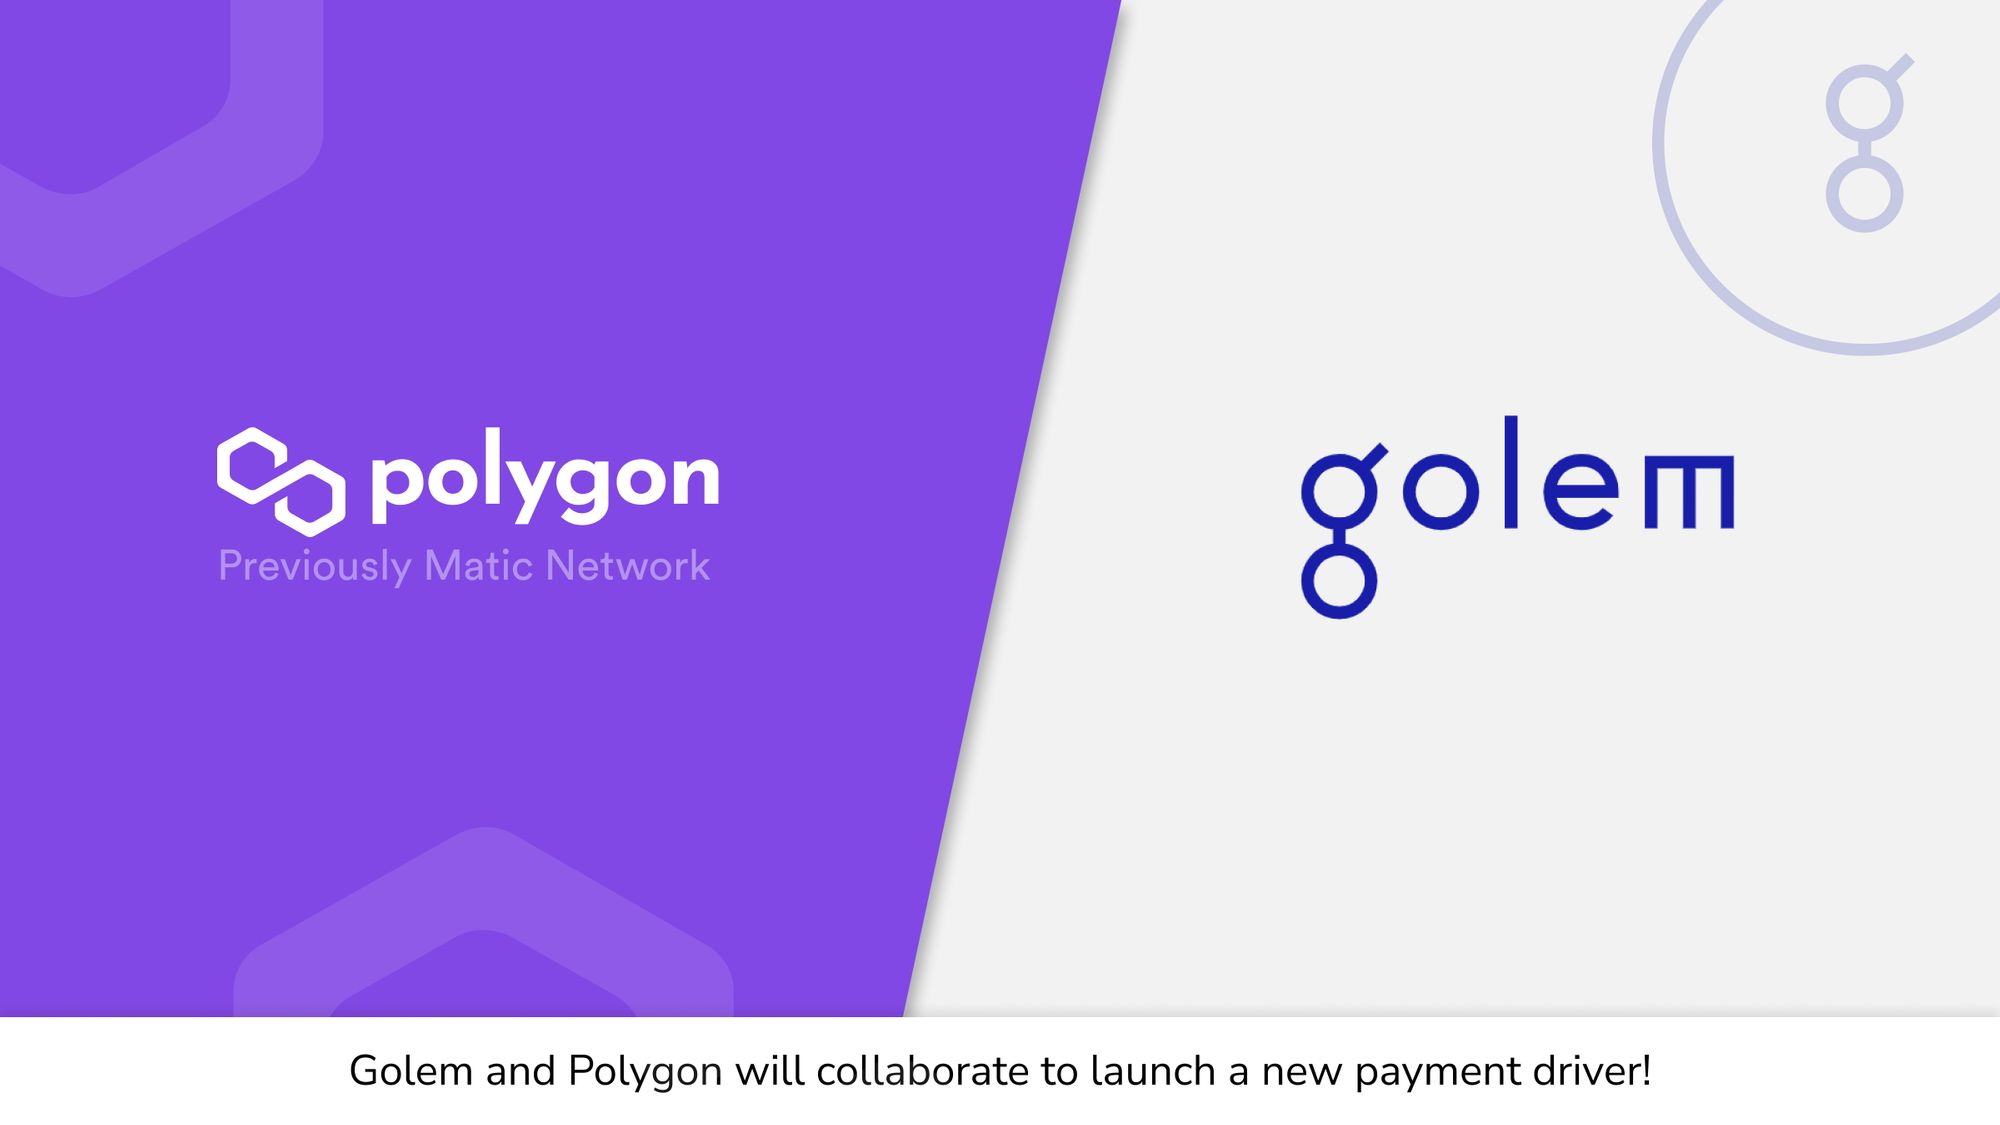 Golem will collaborate with the Polygon team and ecosystem for a new payment driver!